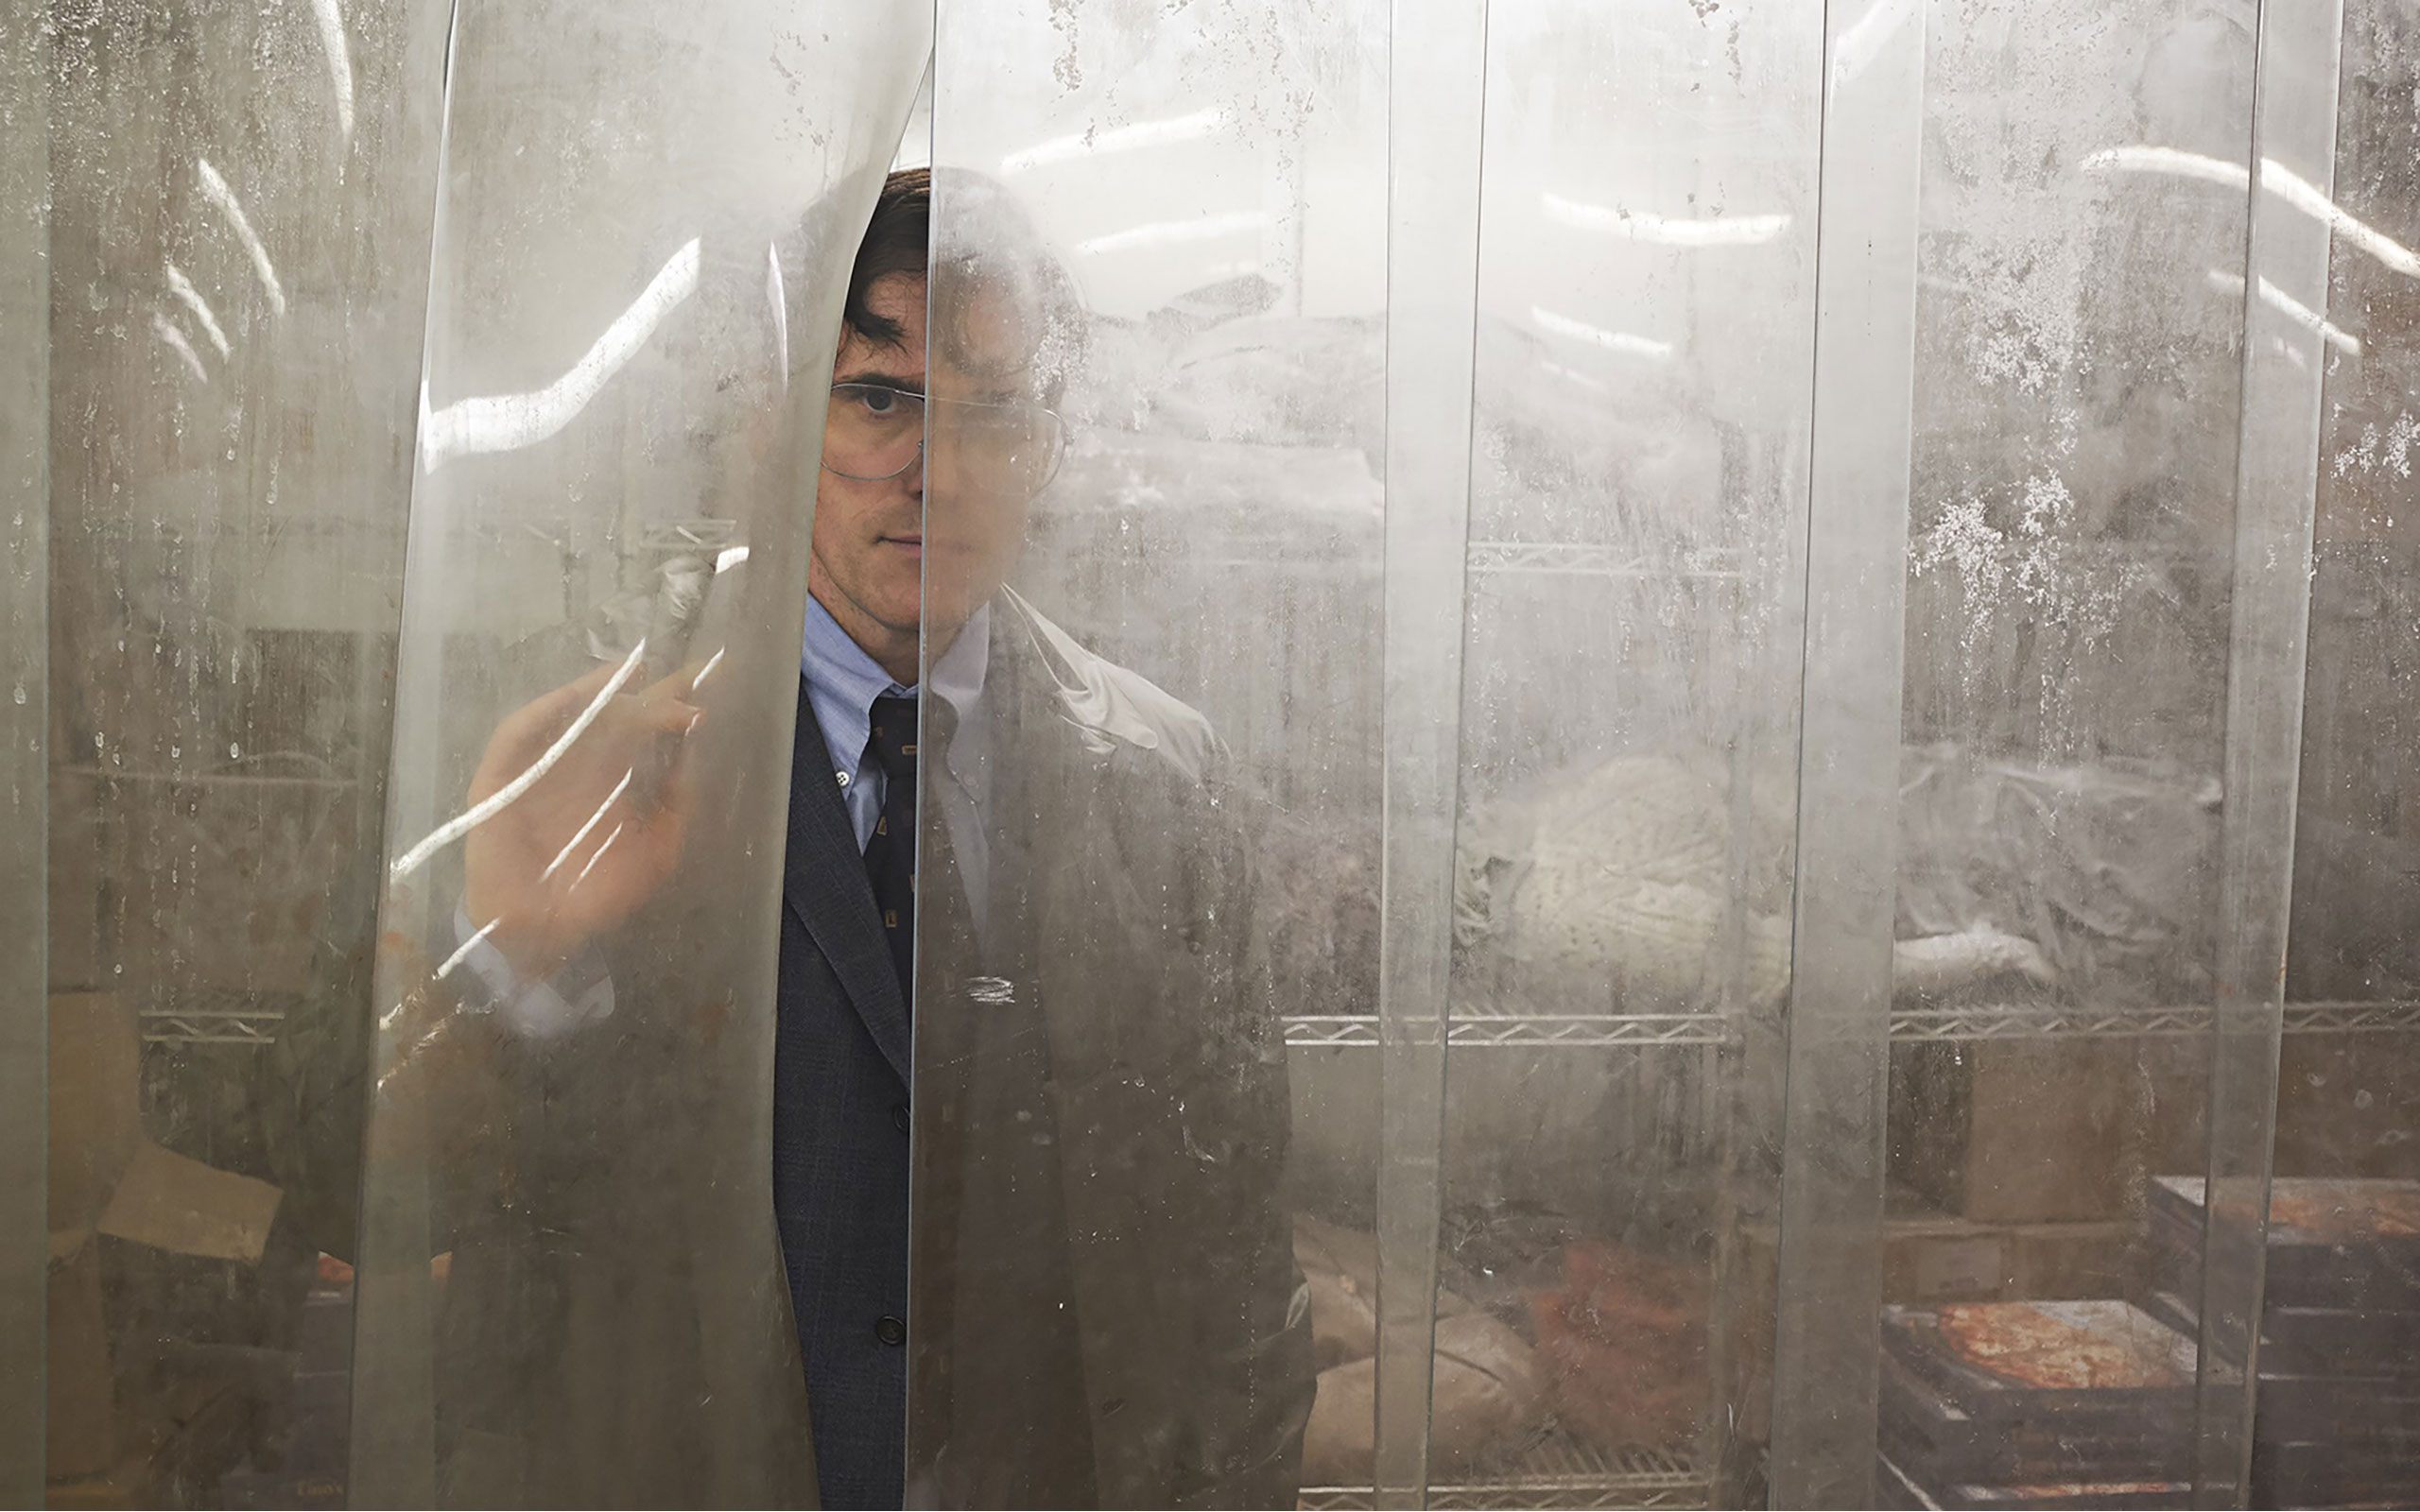 """Watch The Trailer Of Lars von Trier's Latest Film """"The House That Jack Built"""""""